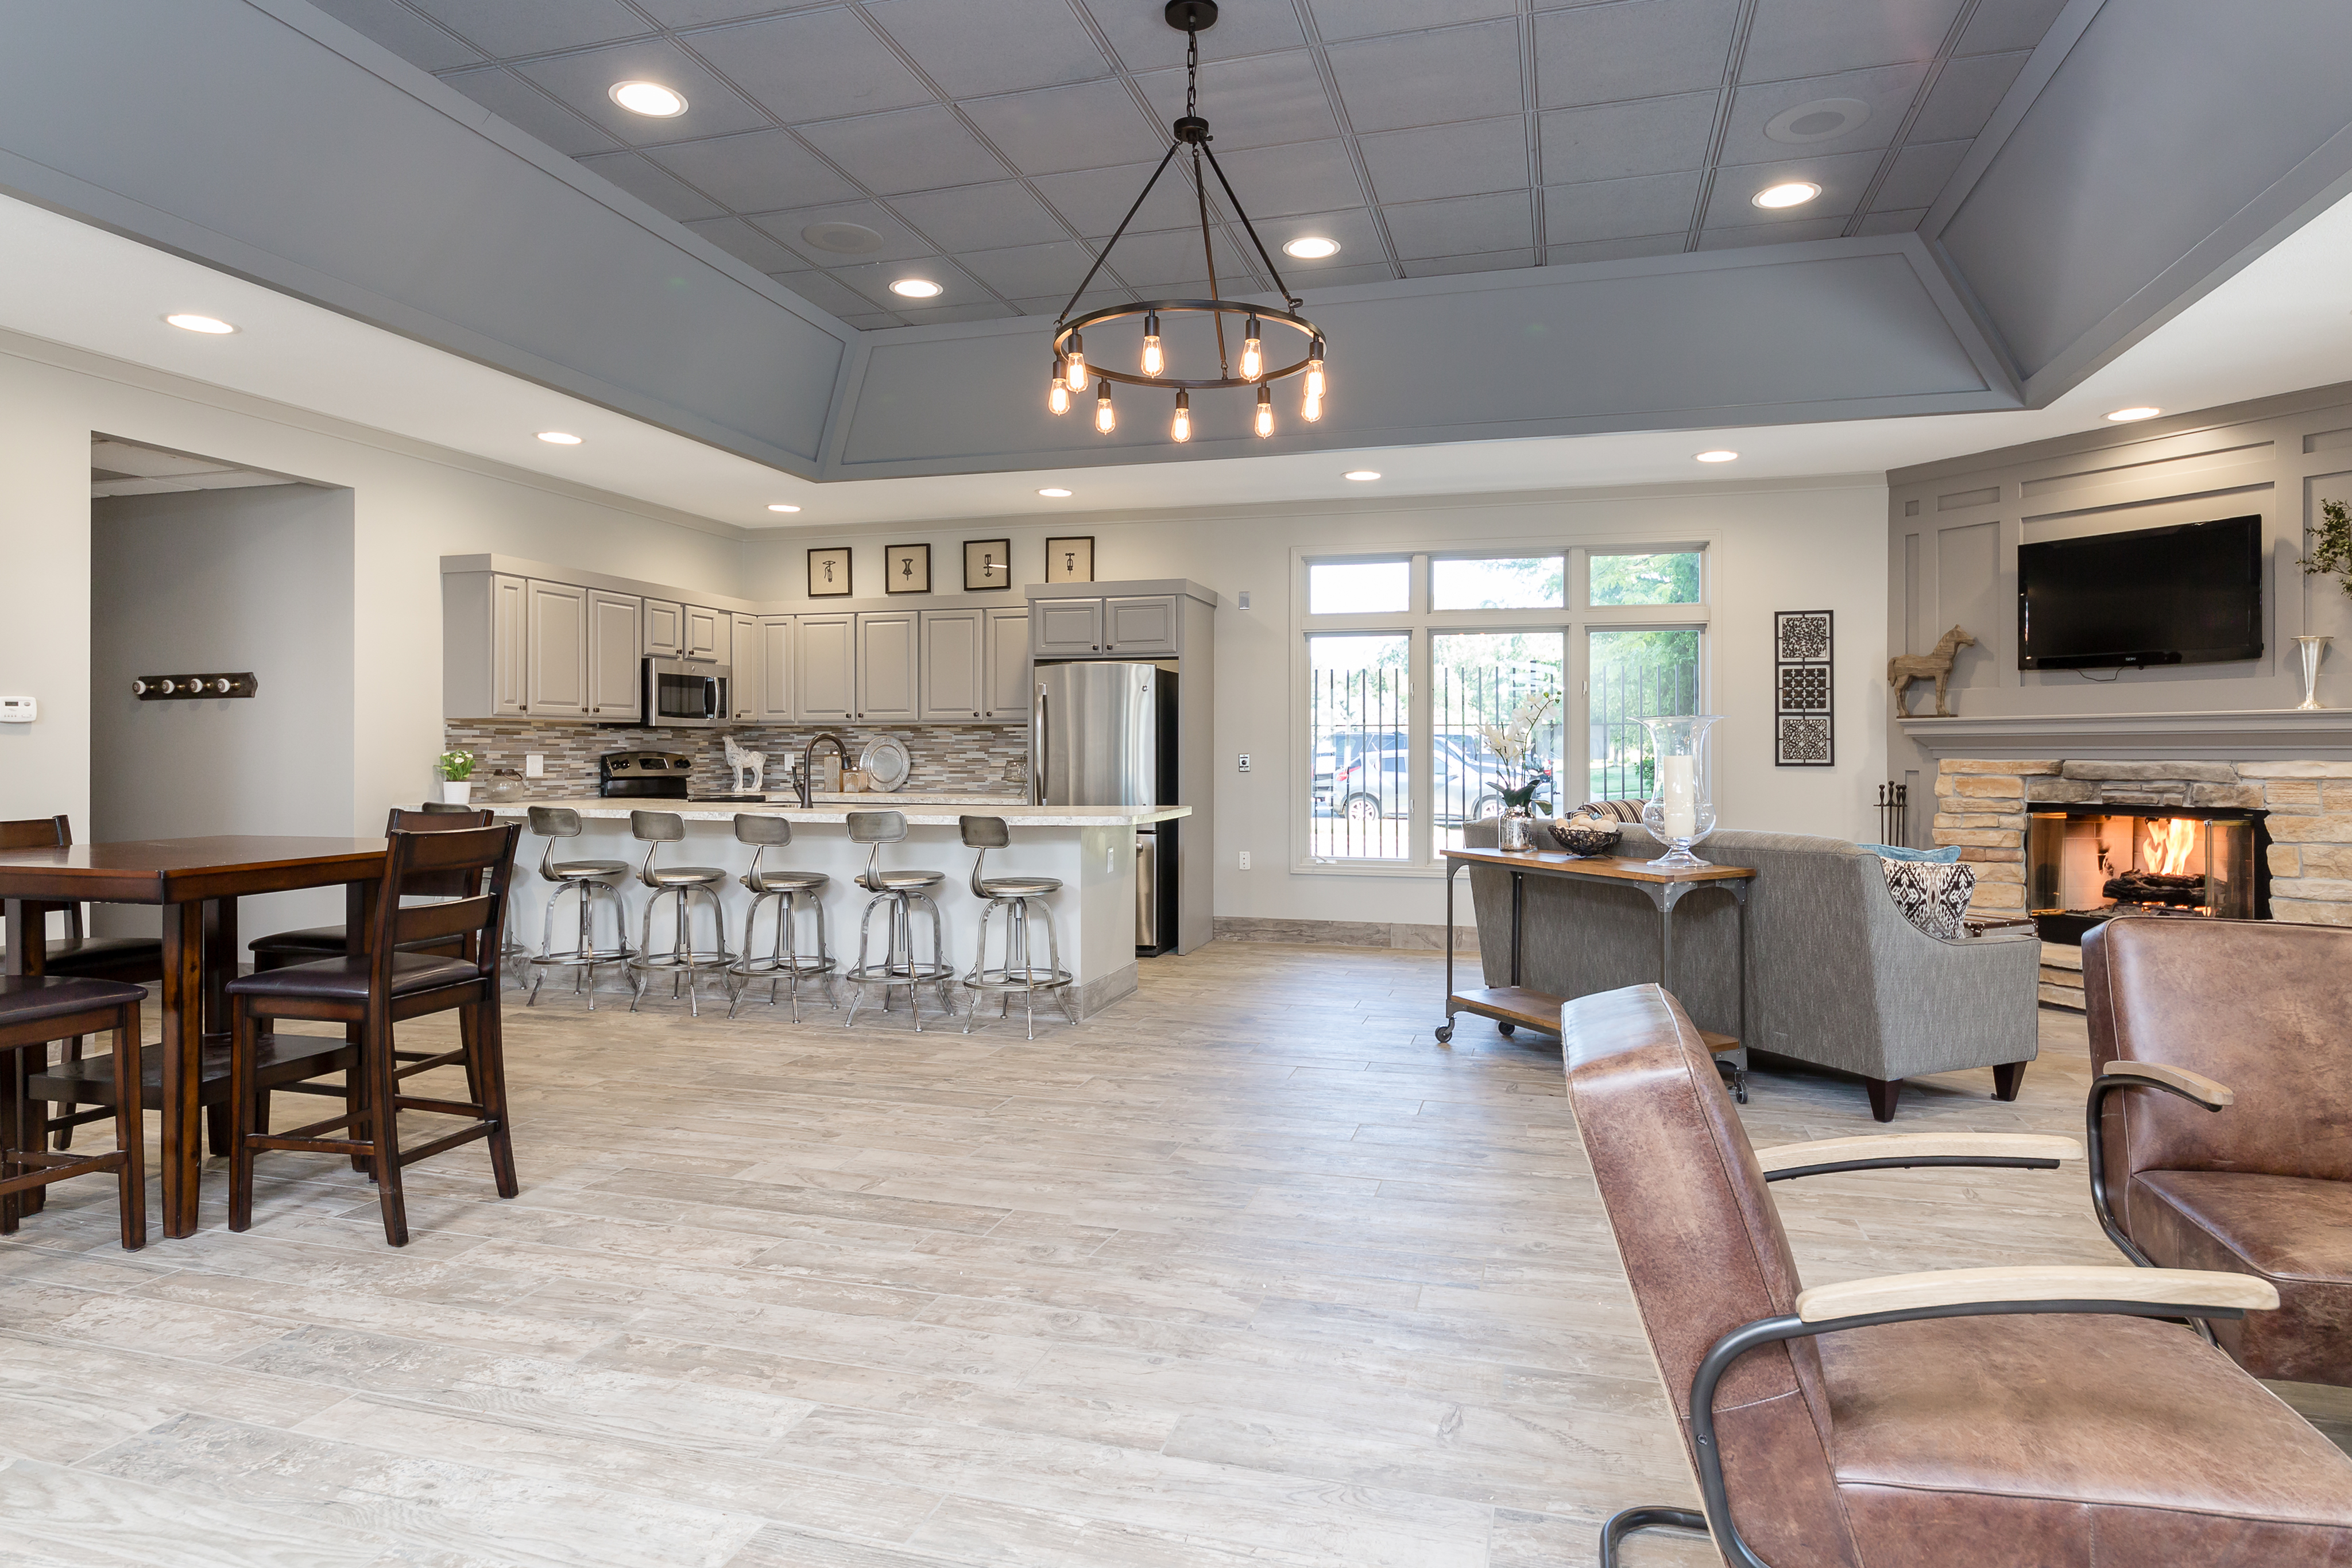 View of Clubhouse, Showing Community Kitchen, Lounge Space, Plank Flooring, Fireplace and Windows at Clearview Apartments